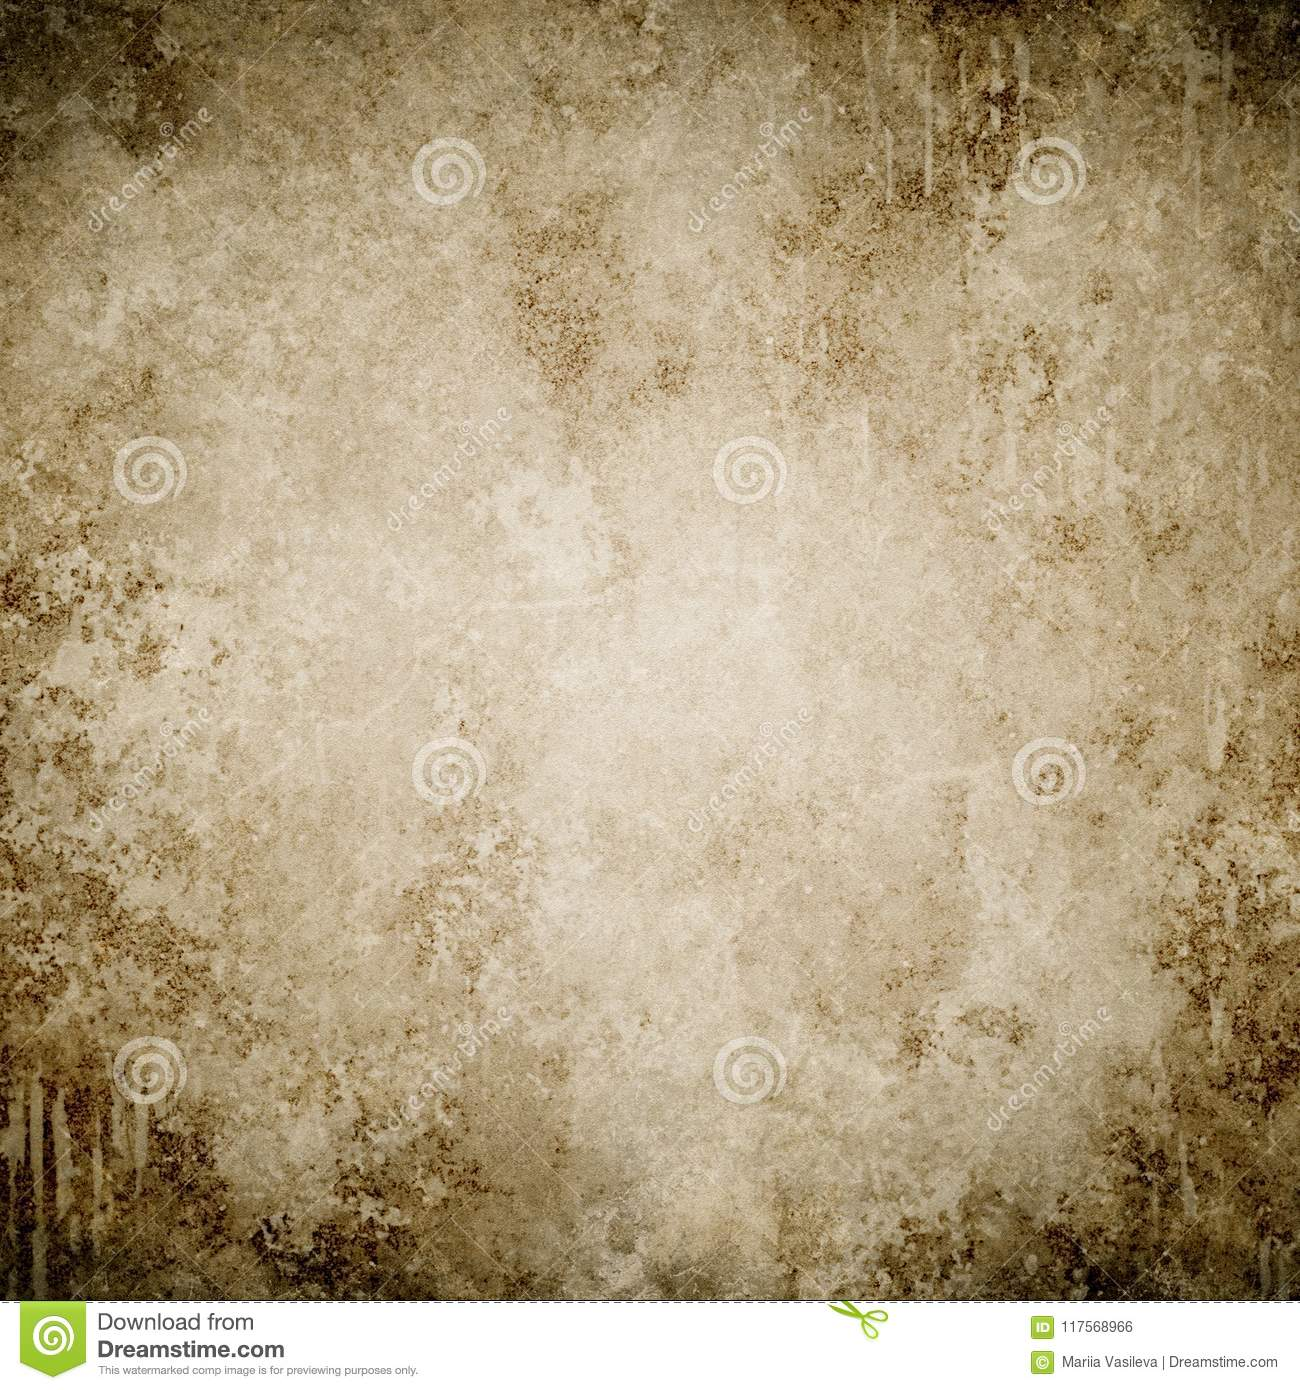 Brown grunge background, paper texture, frame, paint stains,stains, vintage